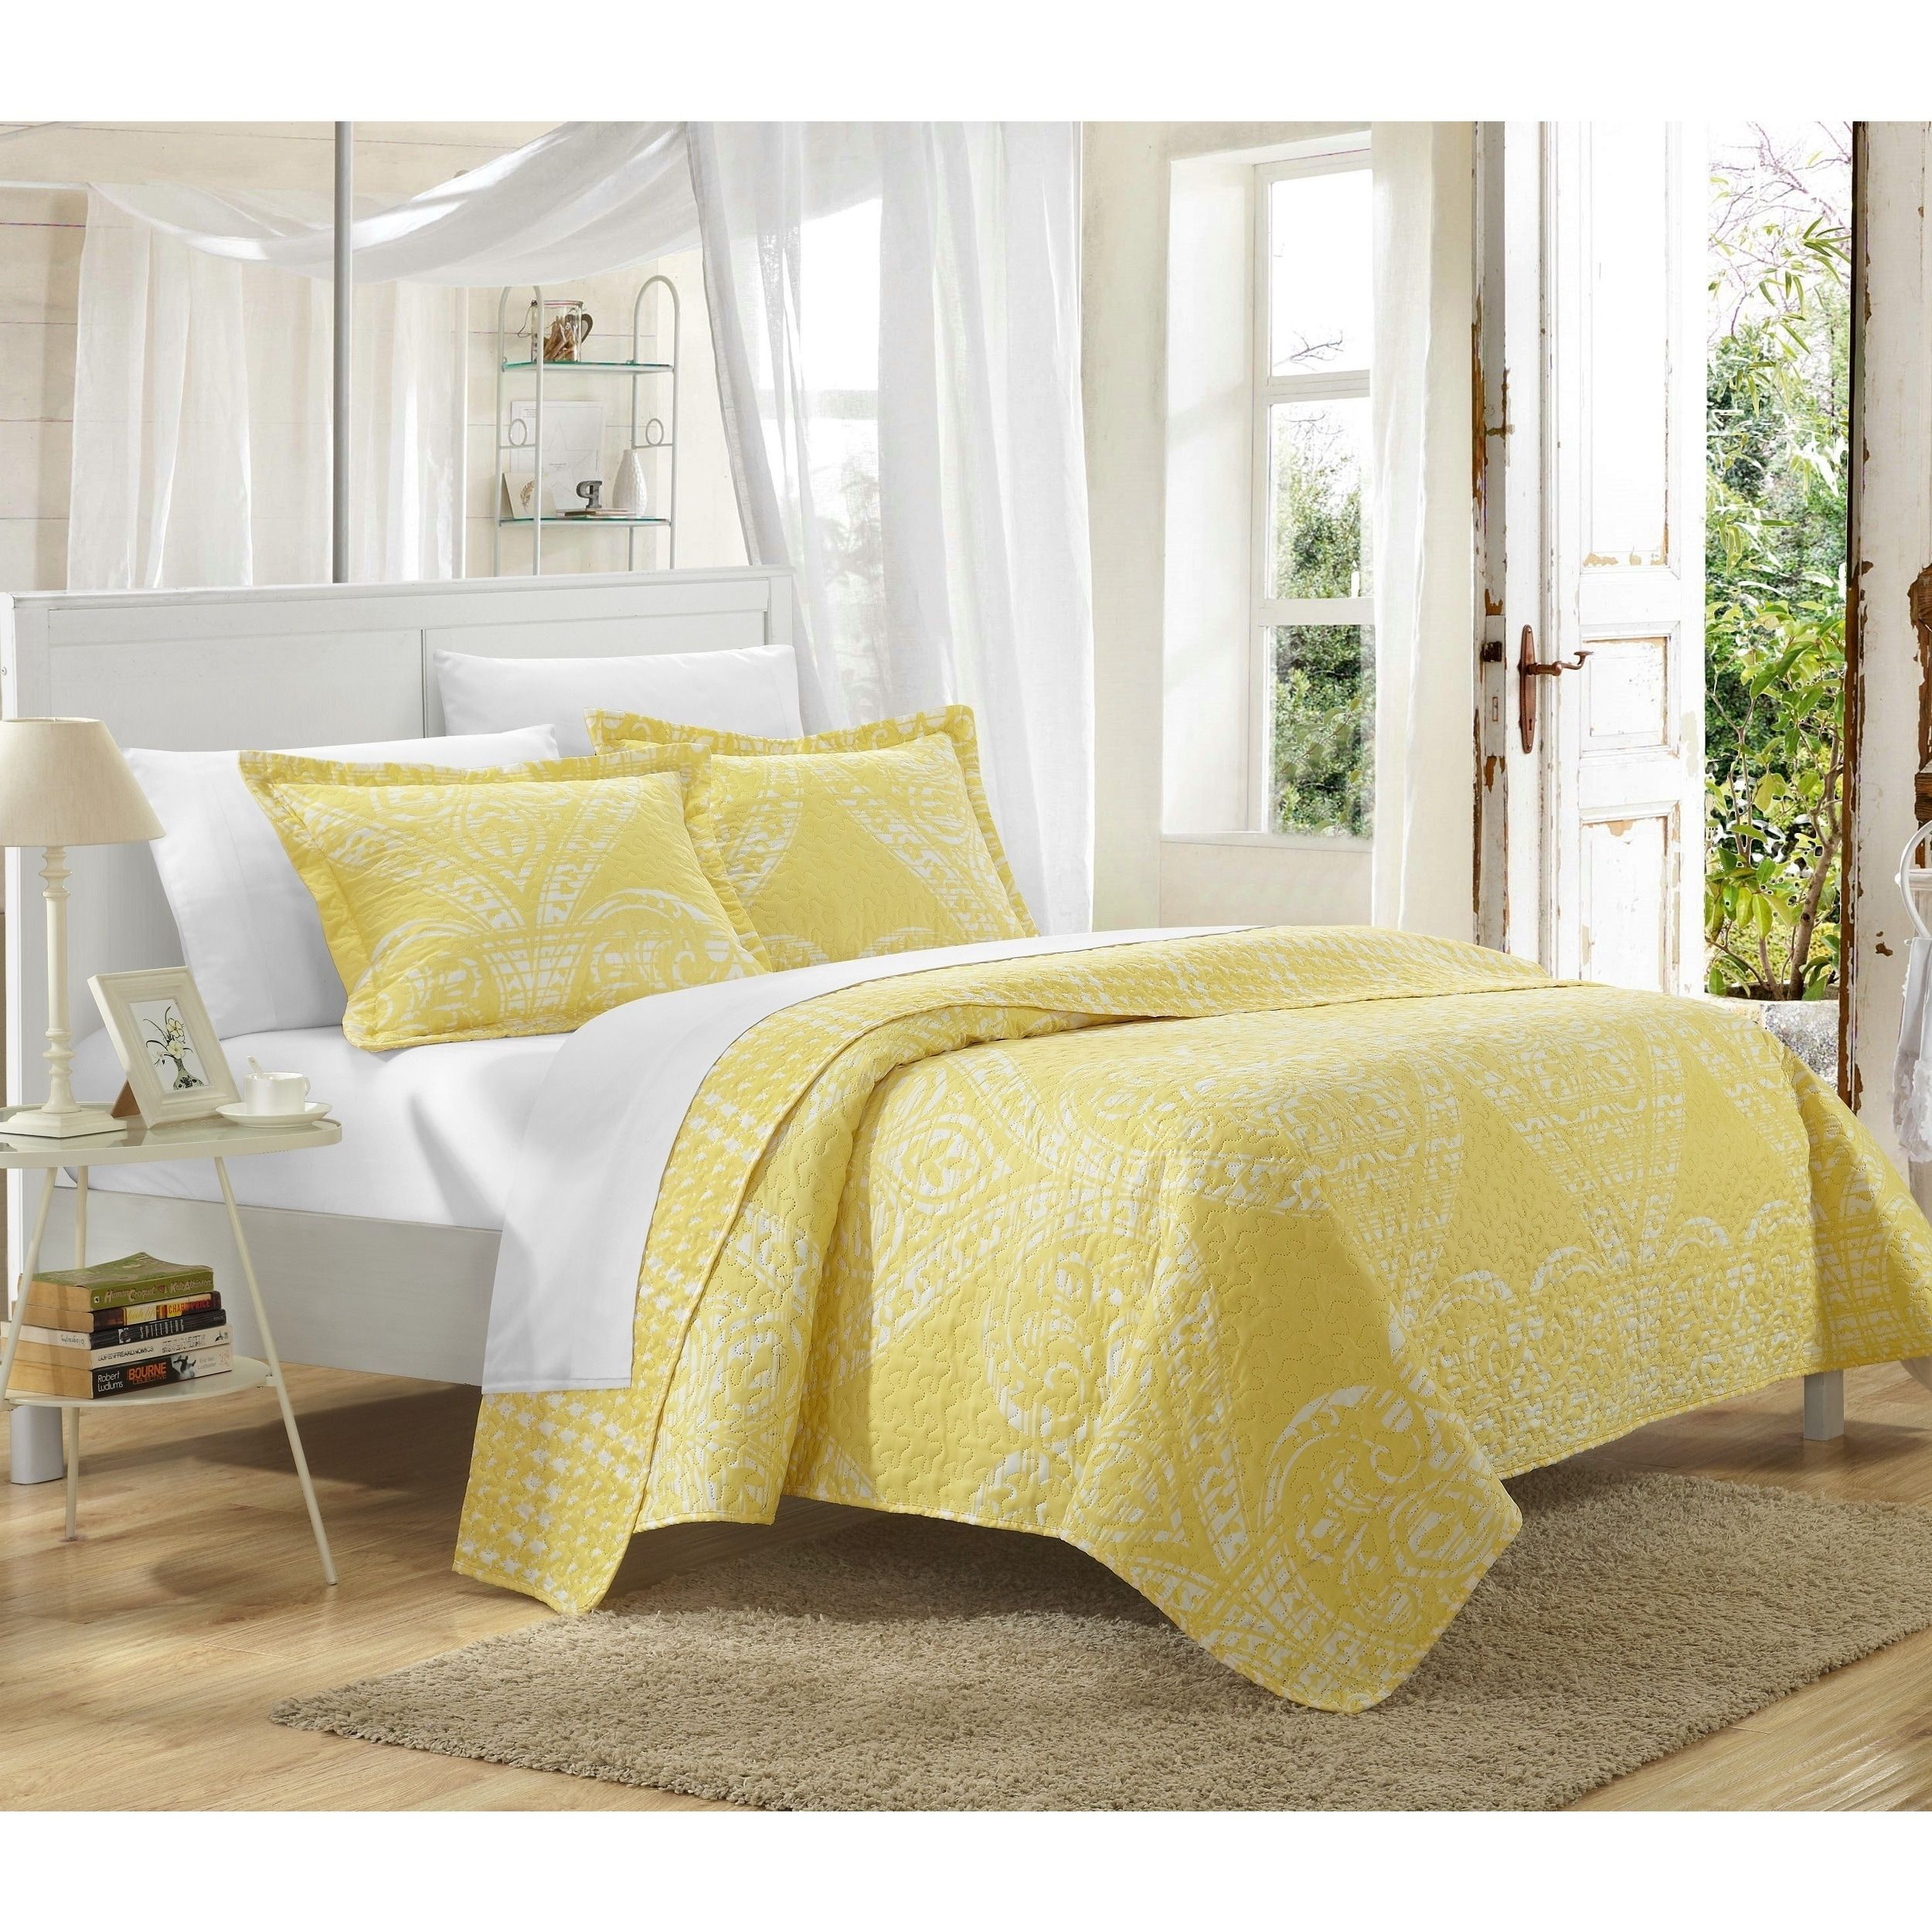 Overstock Com Online Shopping Bedding Furniture Electronics Jewelry Clothing More Quilt Sets Comforter Sets Yellow Bedding